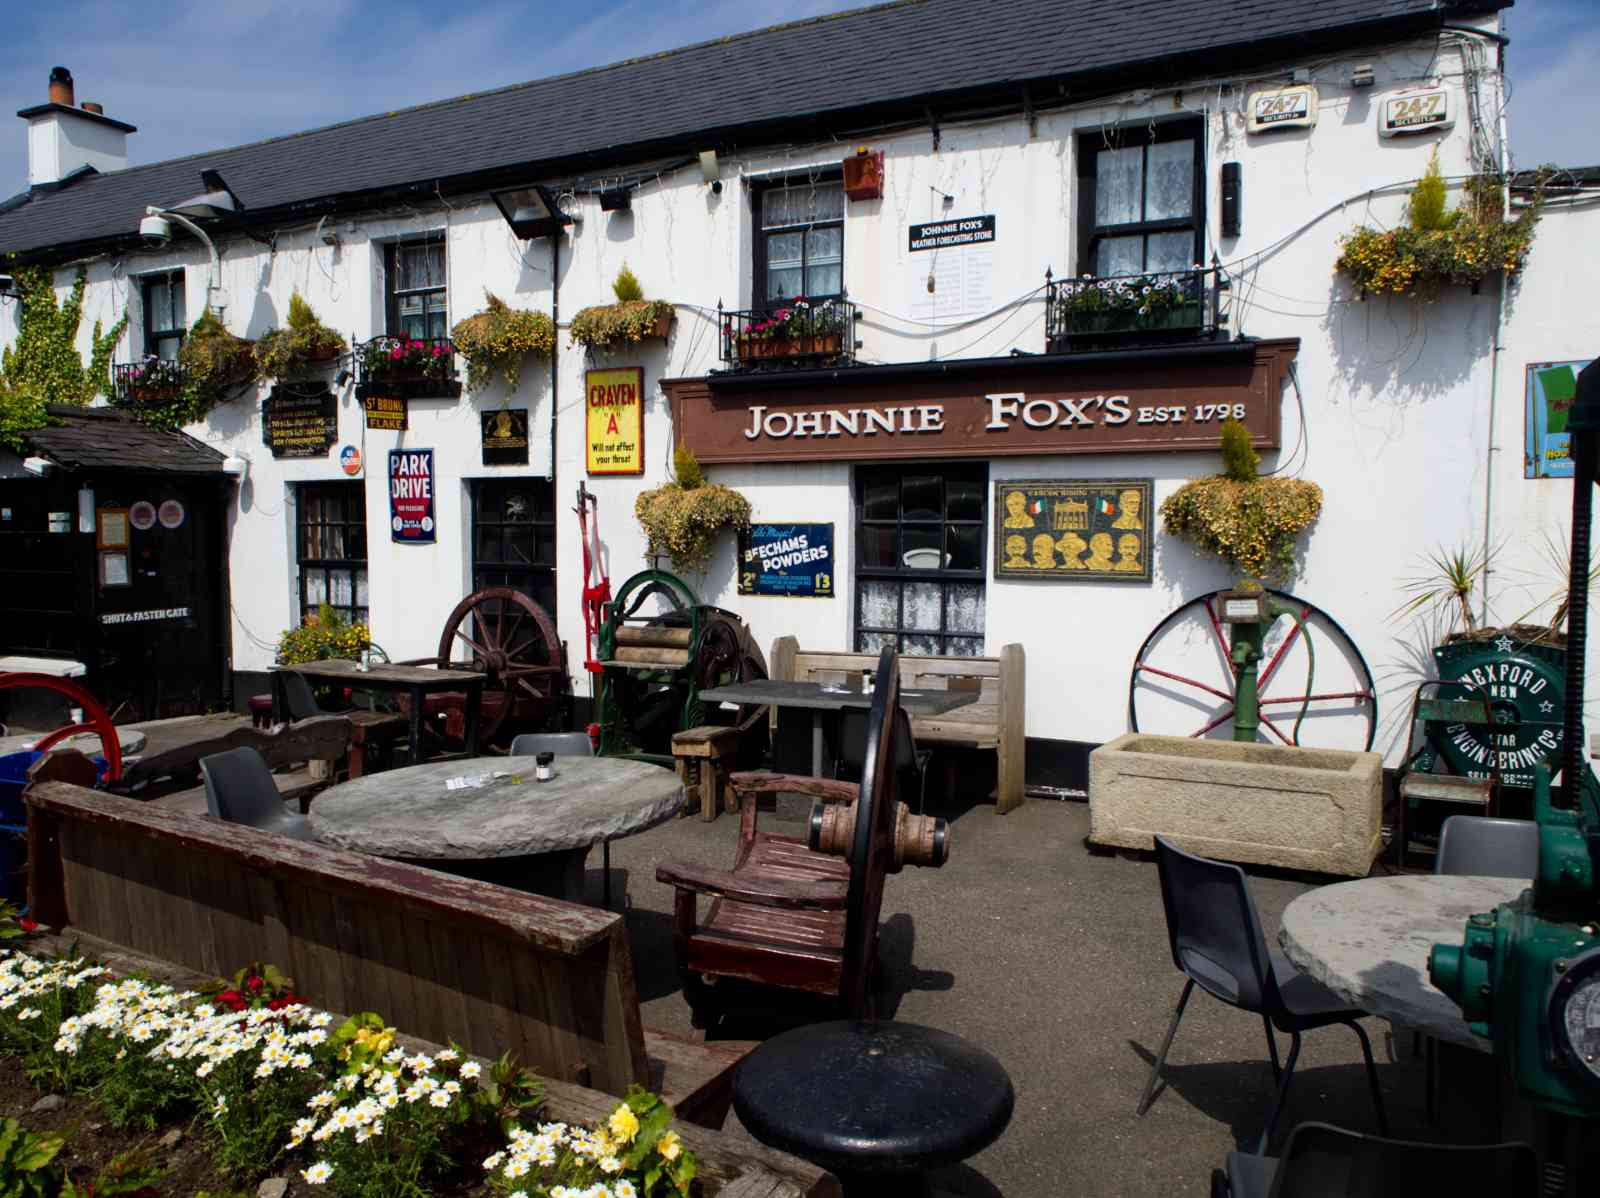 Prince William's Seat - Johnnie Fox's Pub